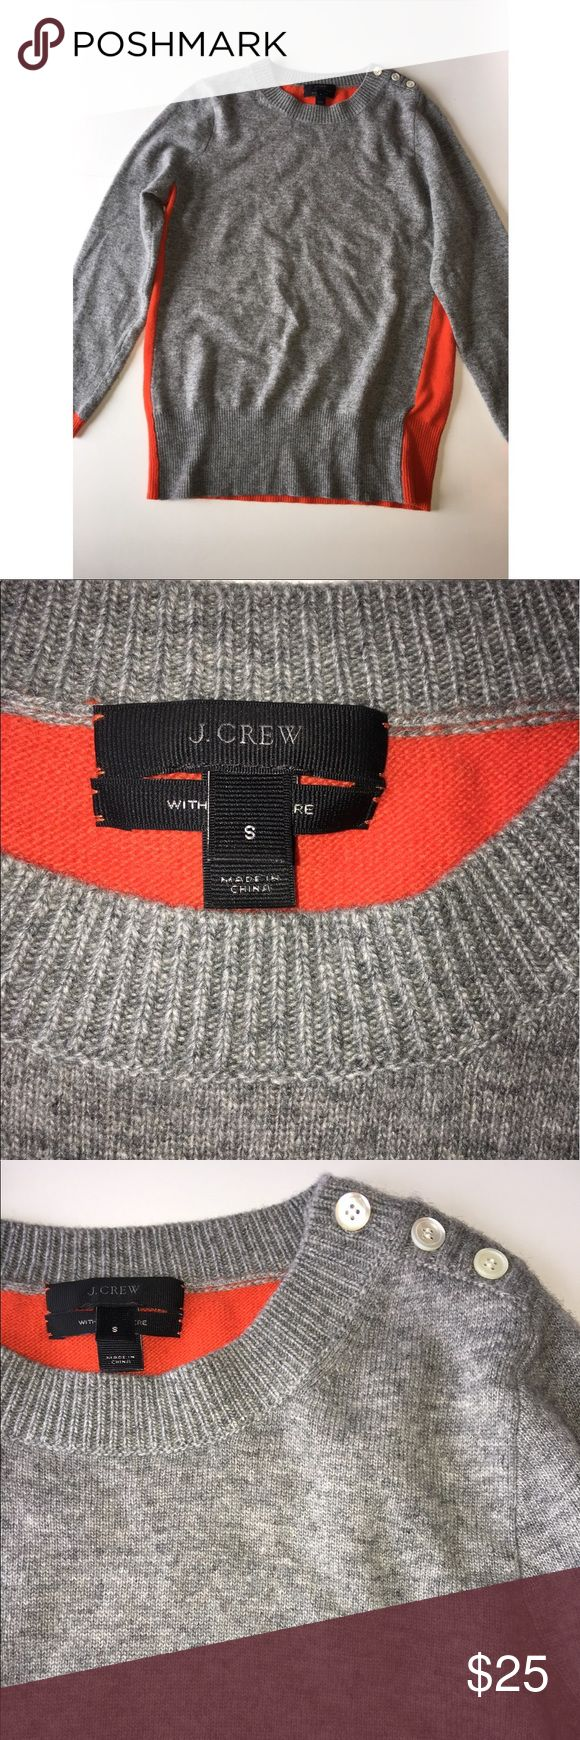 Women's J Crew  Elbow patch sweater. Size Small Women's J Crew  Elbow patch sweater in really good condition. Nice colors, and it's a lighter sweater so you won't be hot in it. Size Small J. Crew Sweaters Crew & Scoop Necks